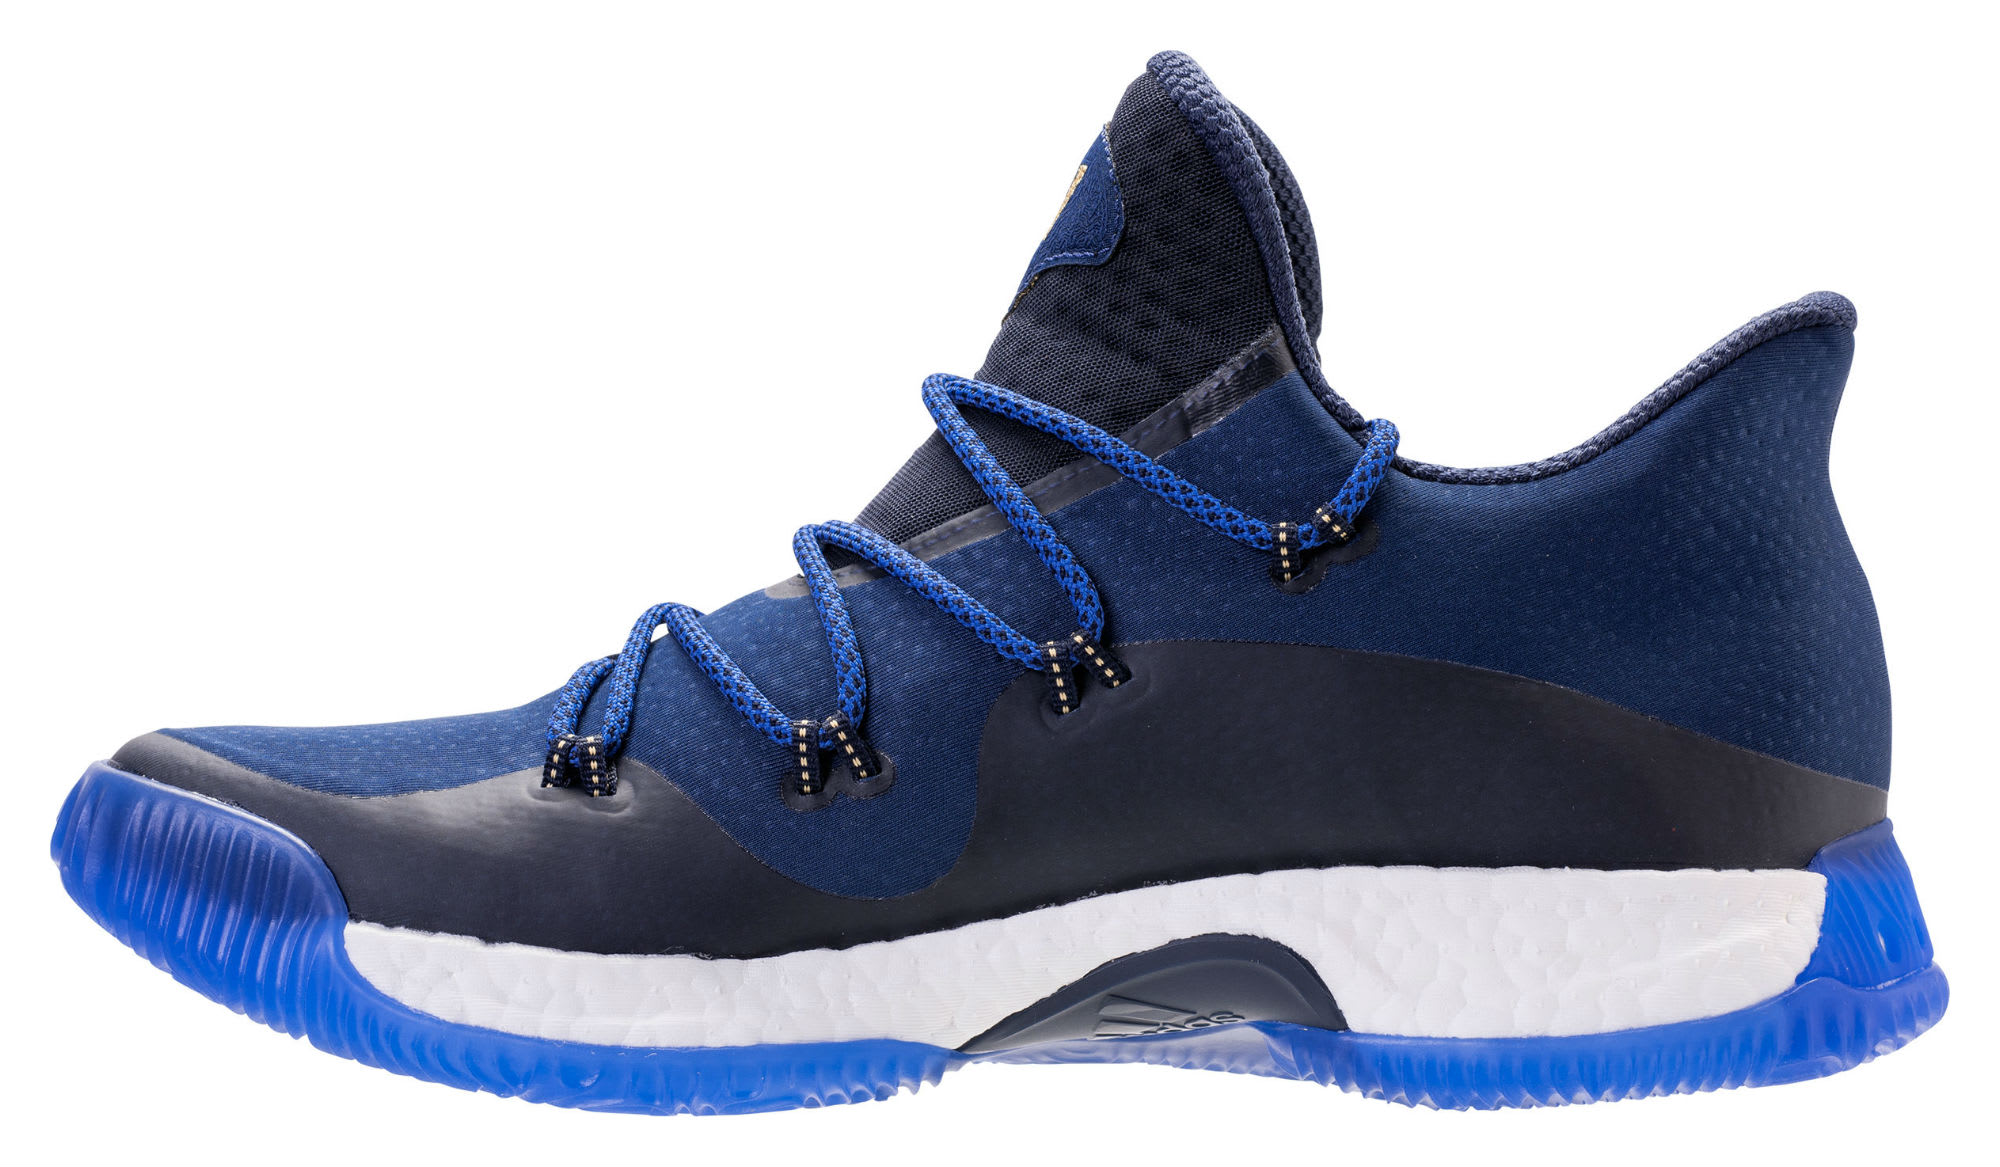 Adidas Crazy Explosive Low Andrew Wiggins PE Medial Release Date BW0571